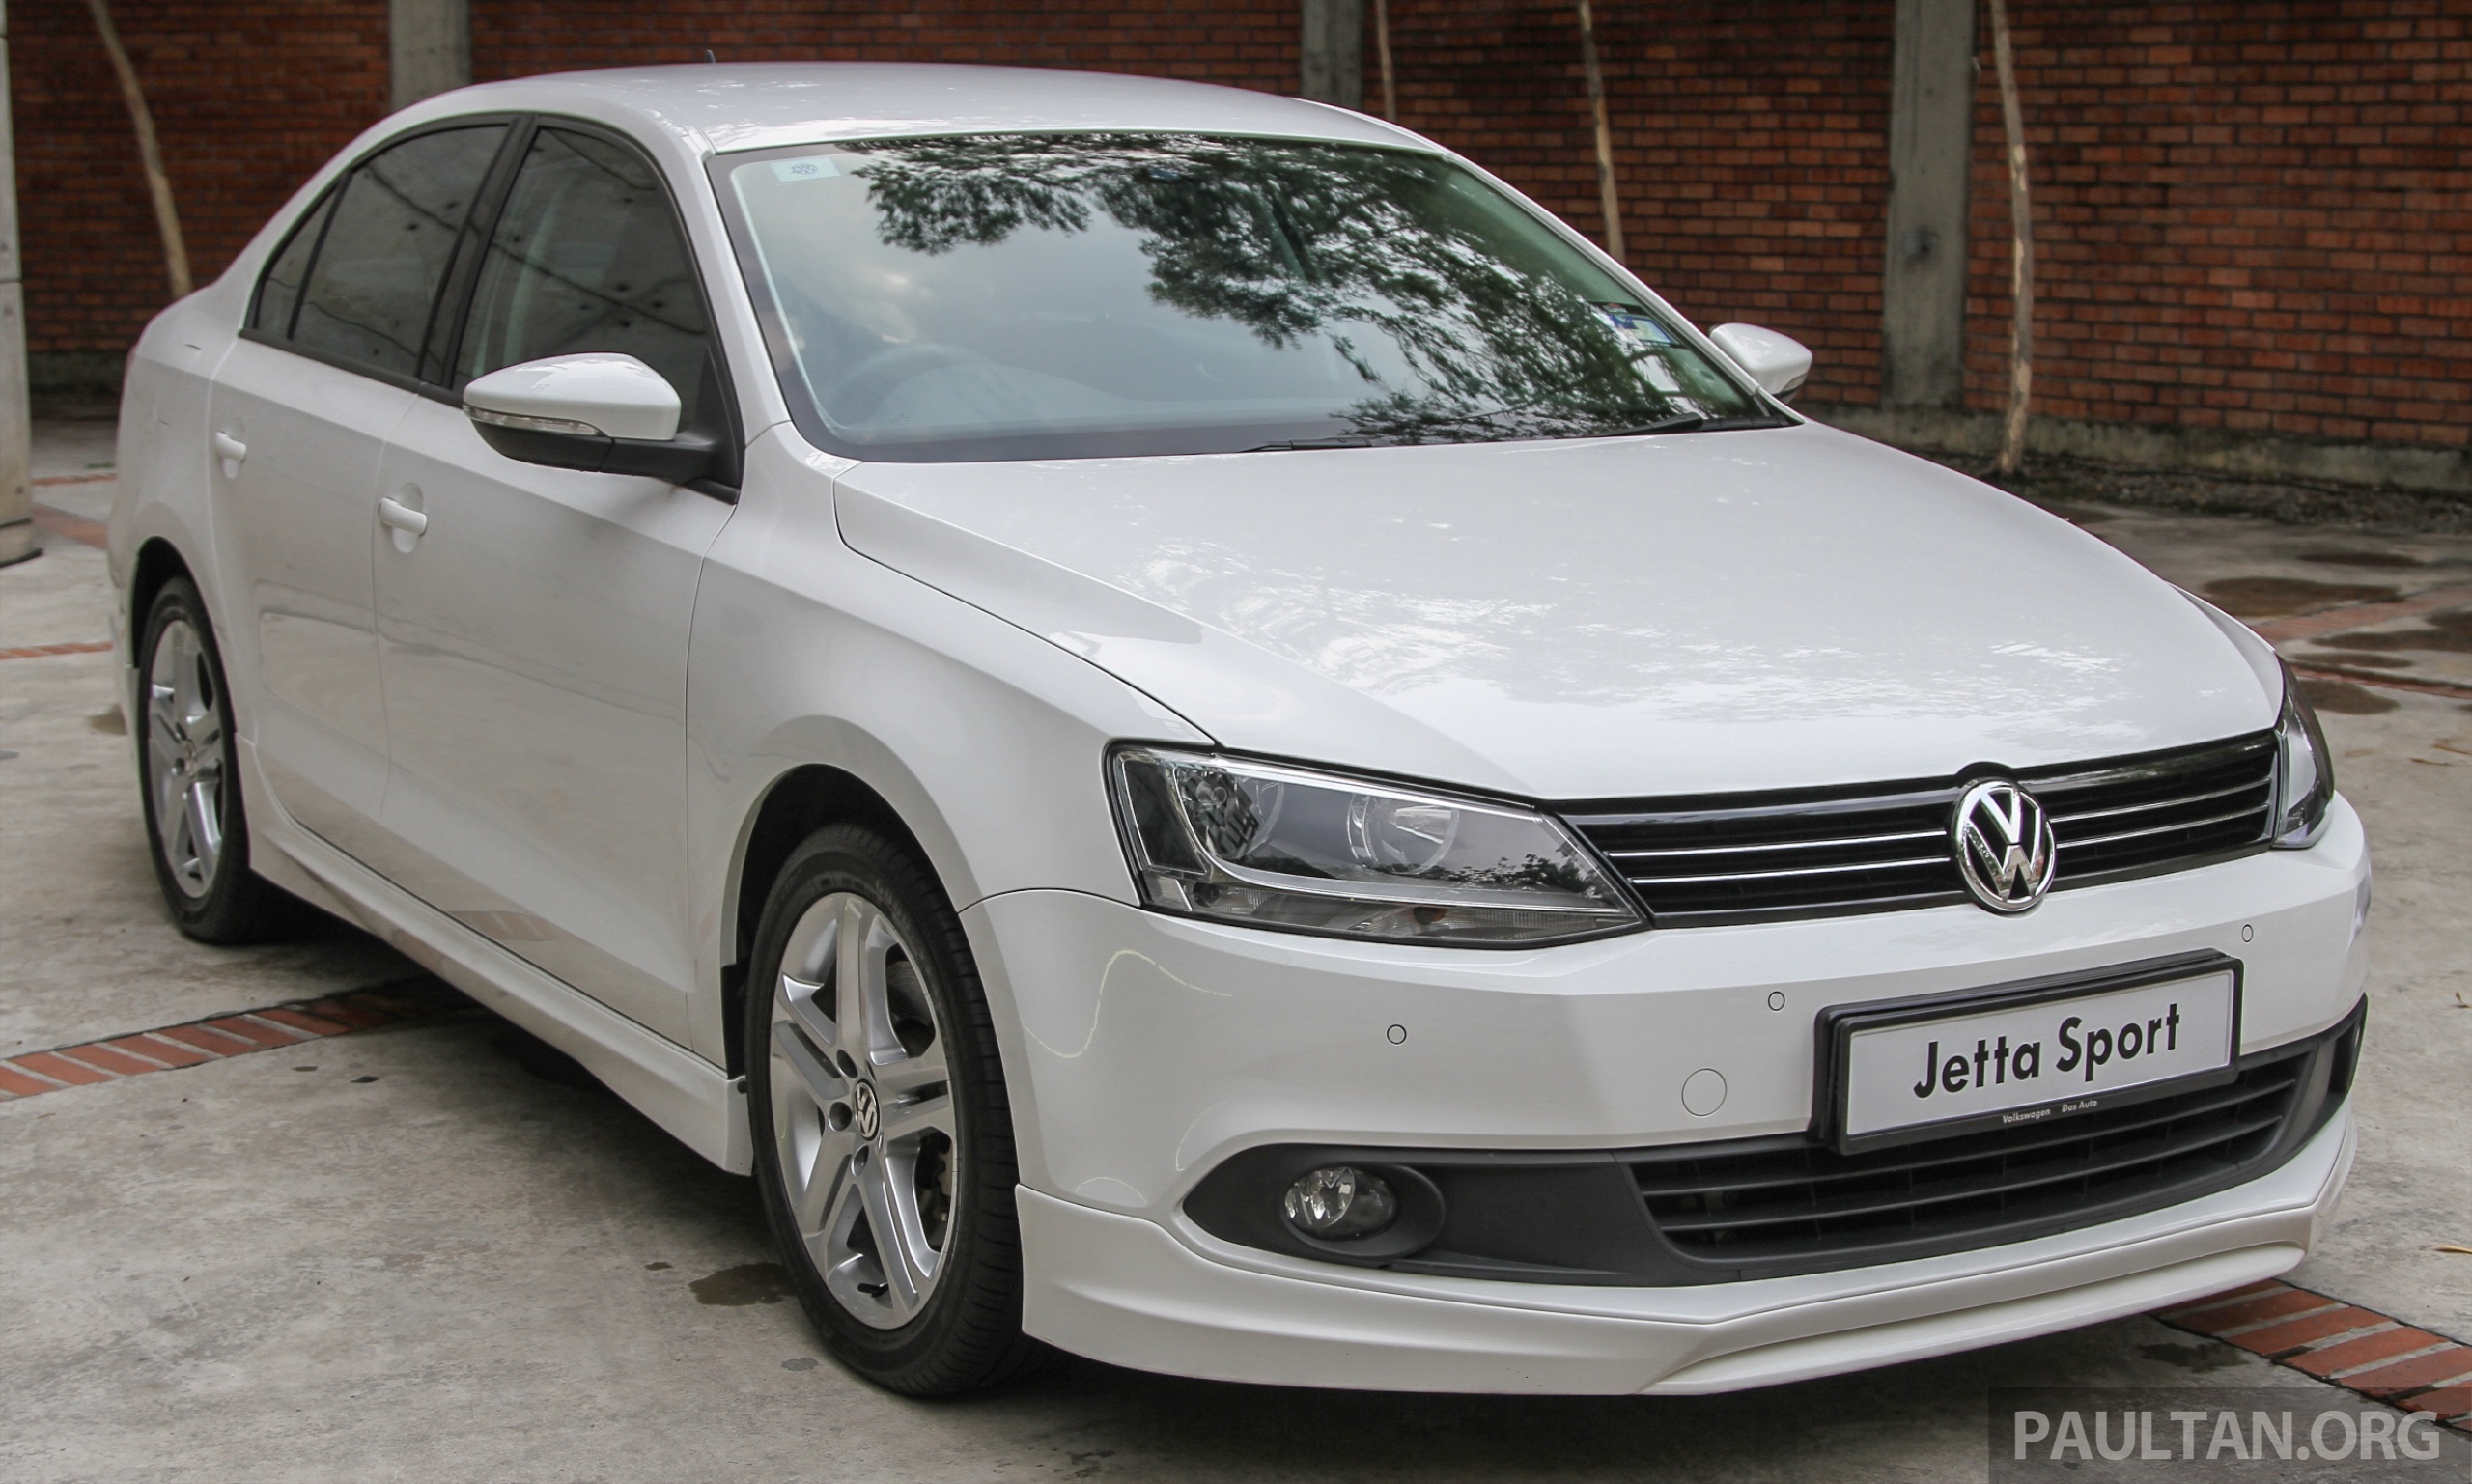 volkswagen jetta club sport edition launched 500 units each. Black Bedroom Furniture Sets. Home Design Ideas